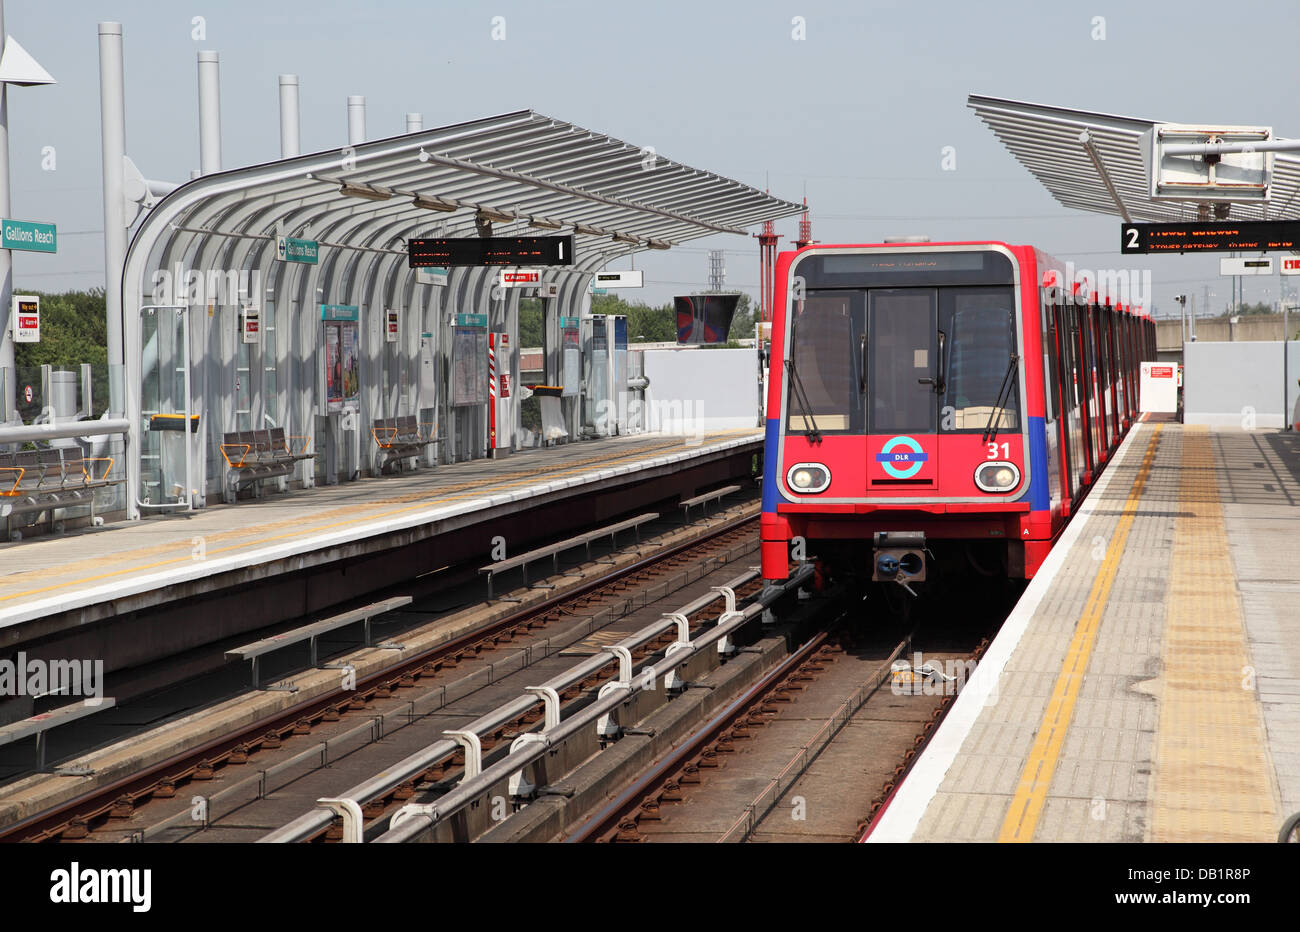 A London Docklands Light Railway train arrives at Gallions Reach station in Beckton, east London, UK - Stock Image